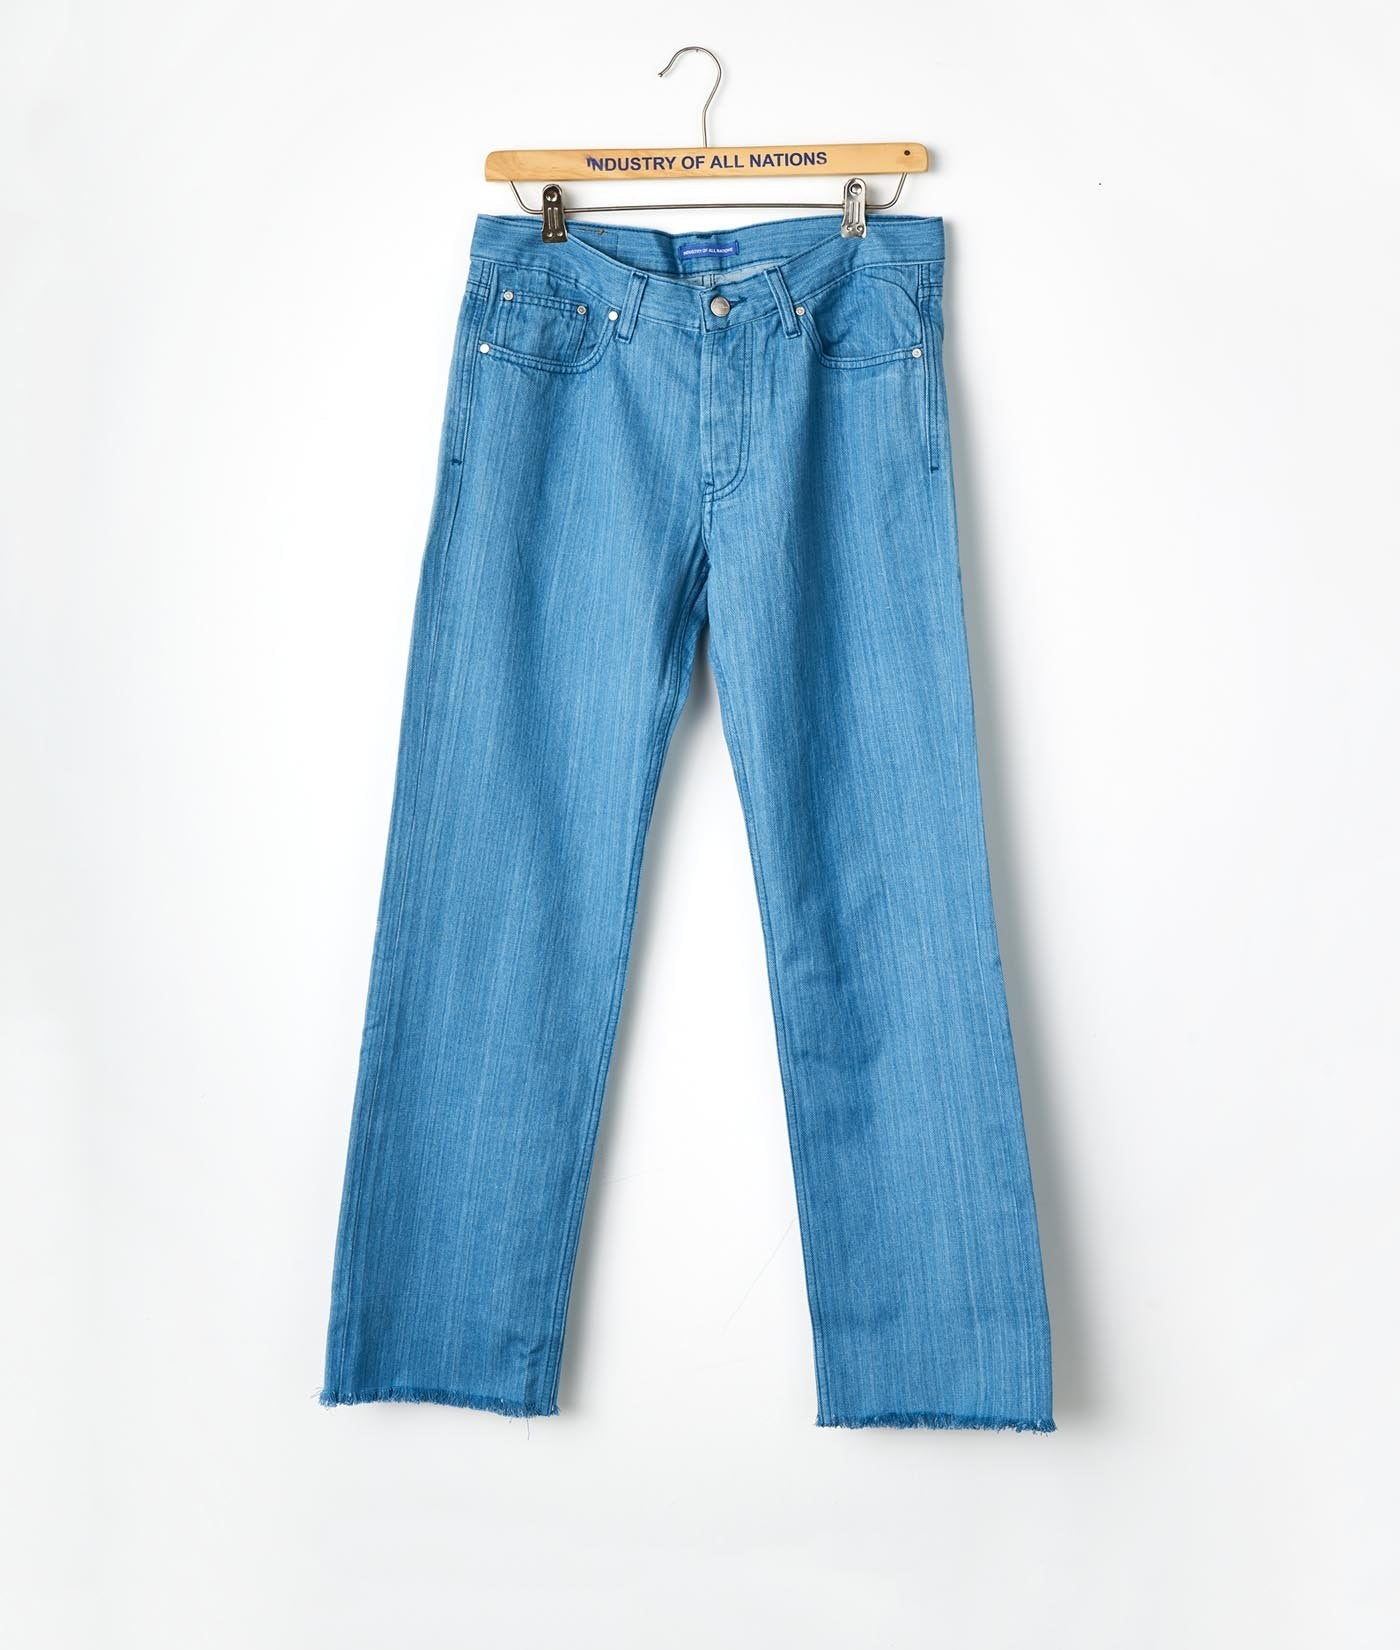 Industry of All Nations Organic Cotton Jeans Indigo 6